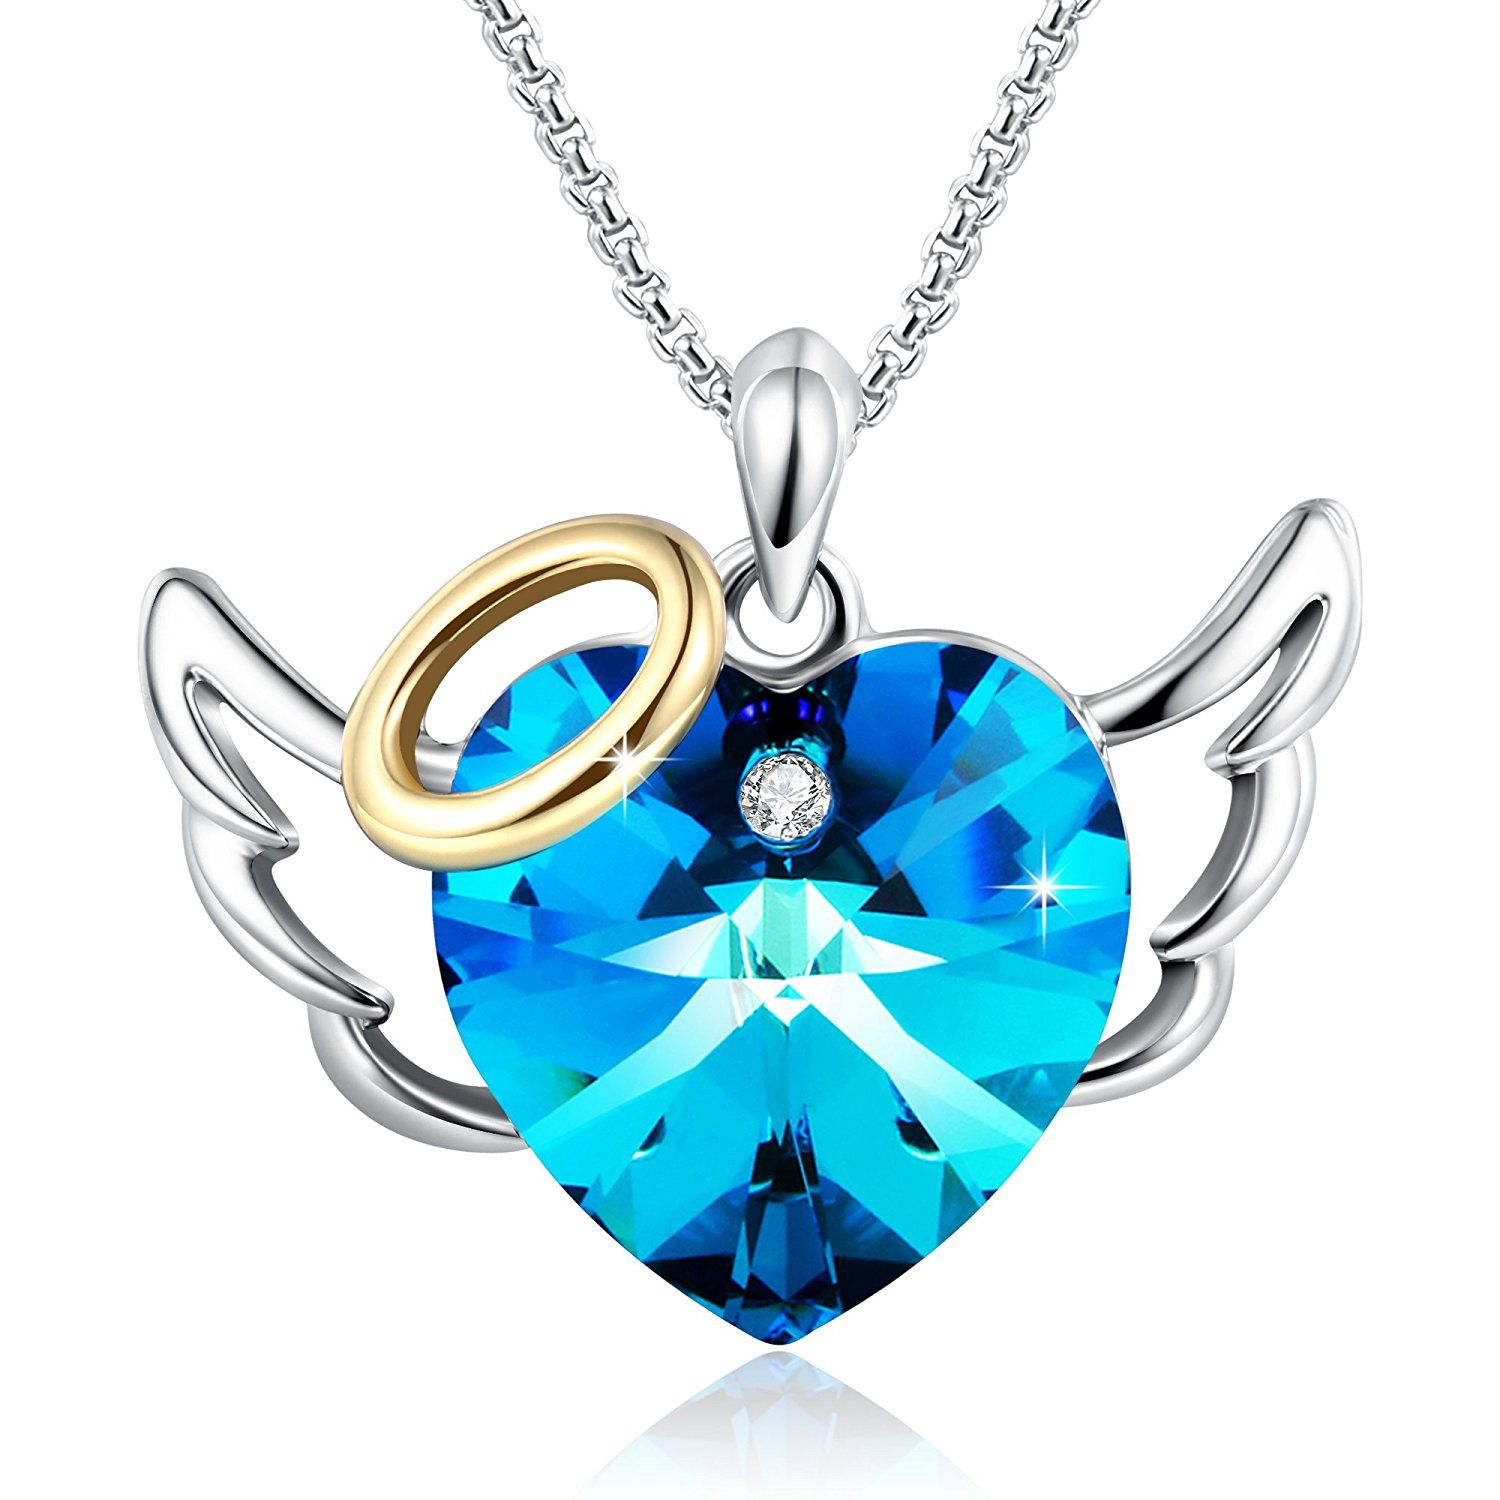 Christmas GiftsLove Angel Heart Pendant Necklace Birthday Jewelry For Girlfriend Daughter Wife Blue Crystals From Swarovski Click Image More